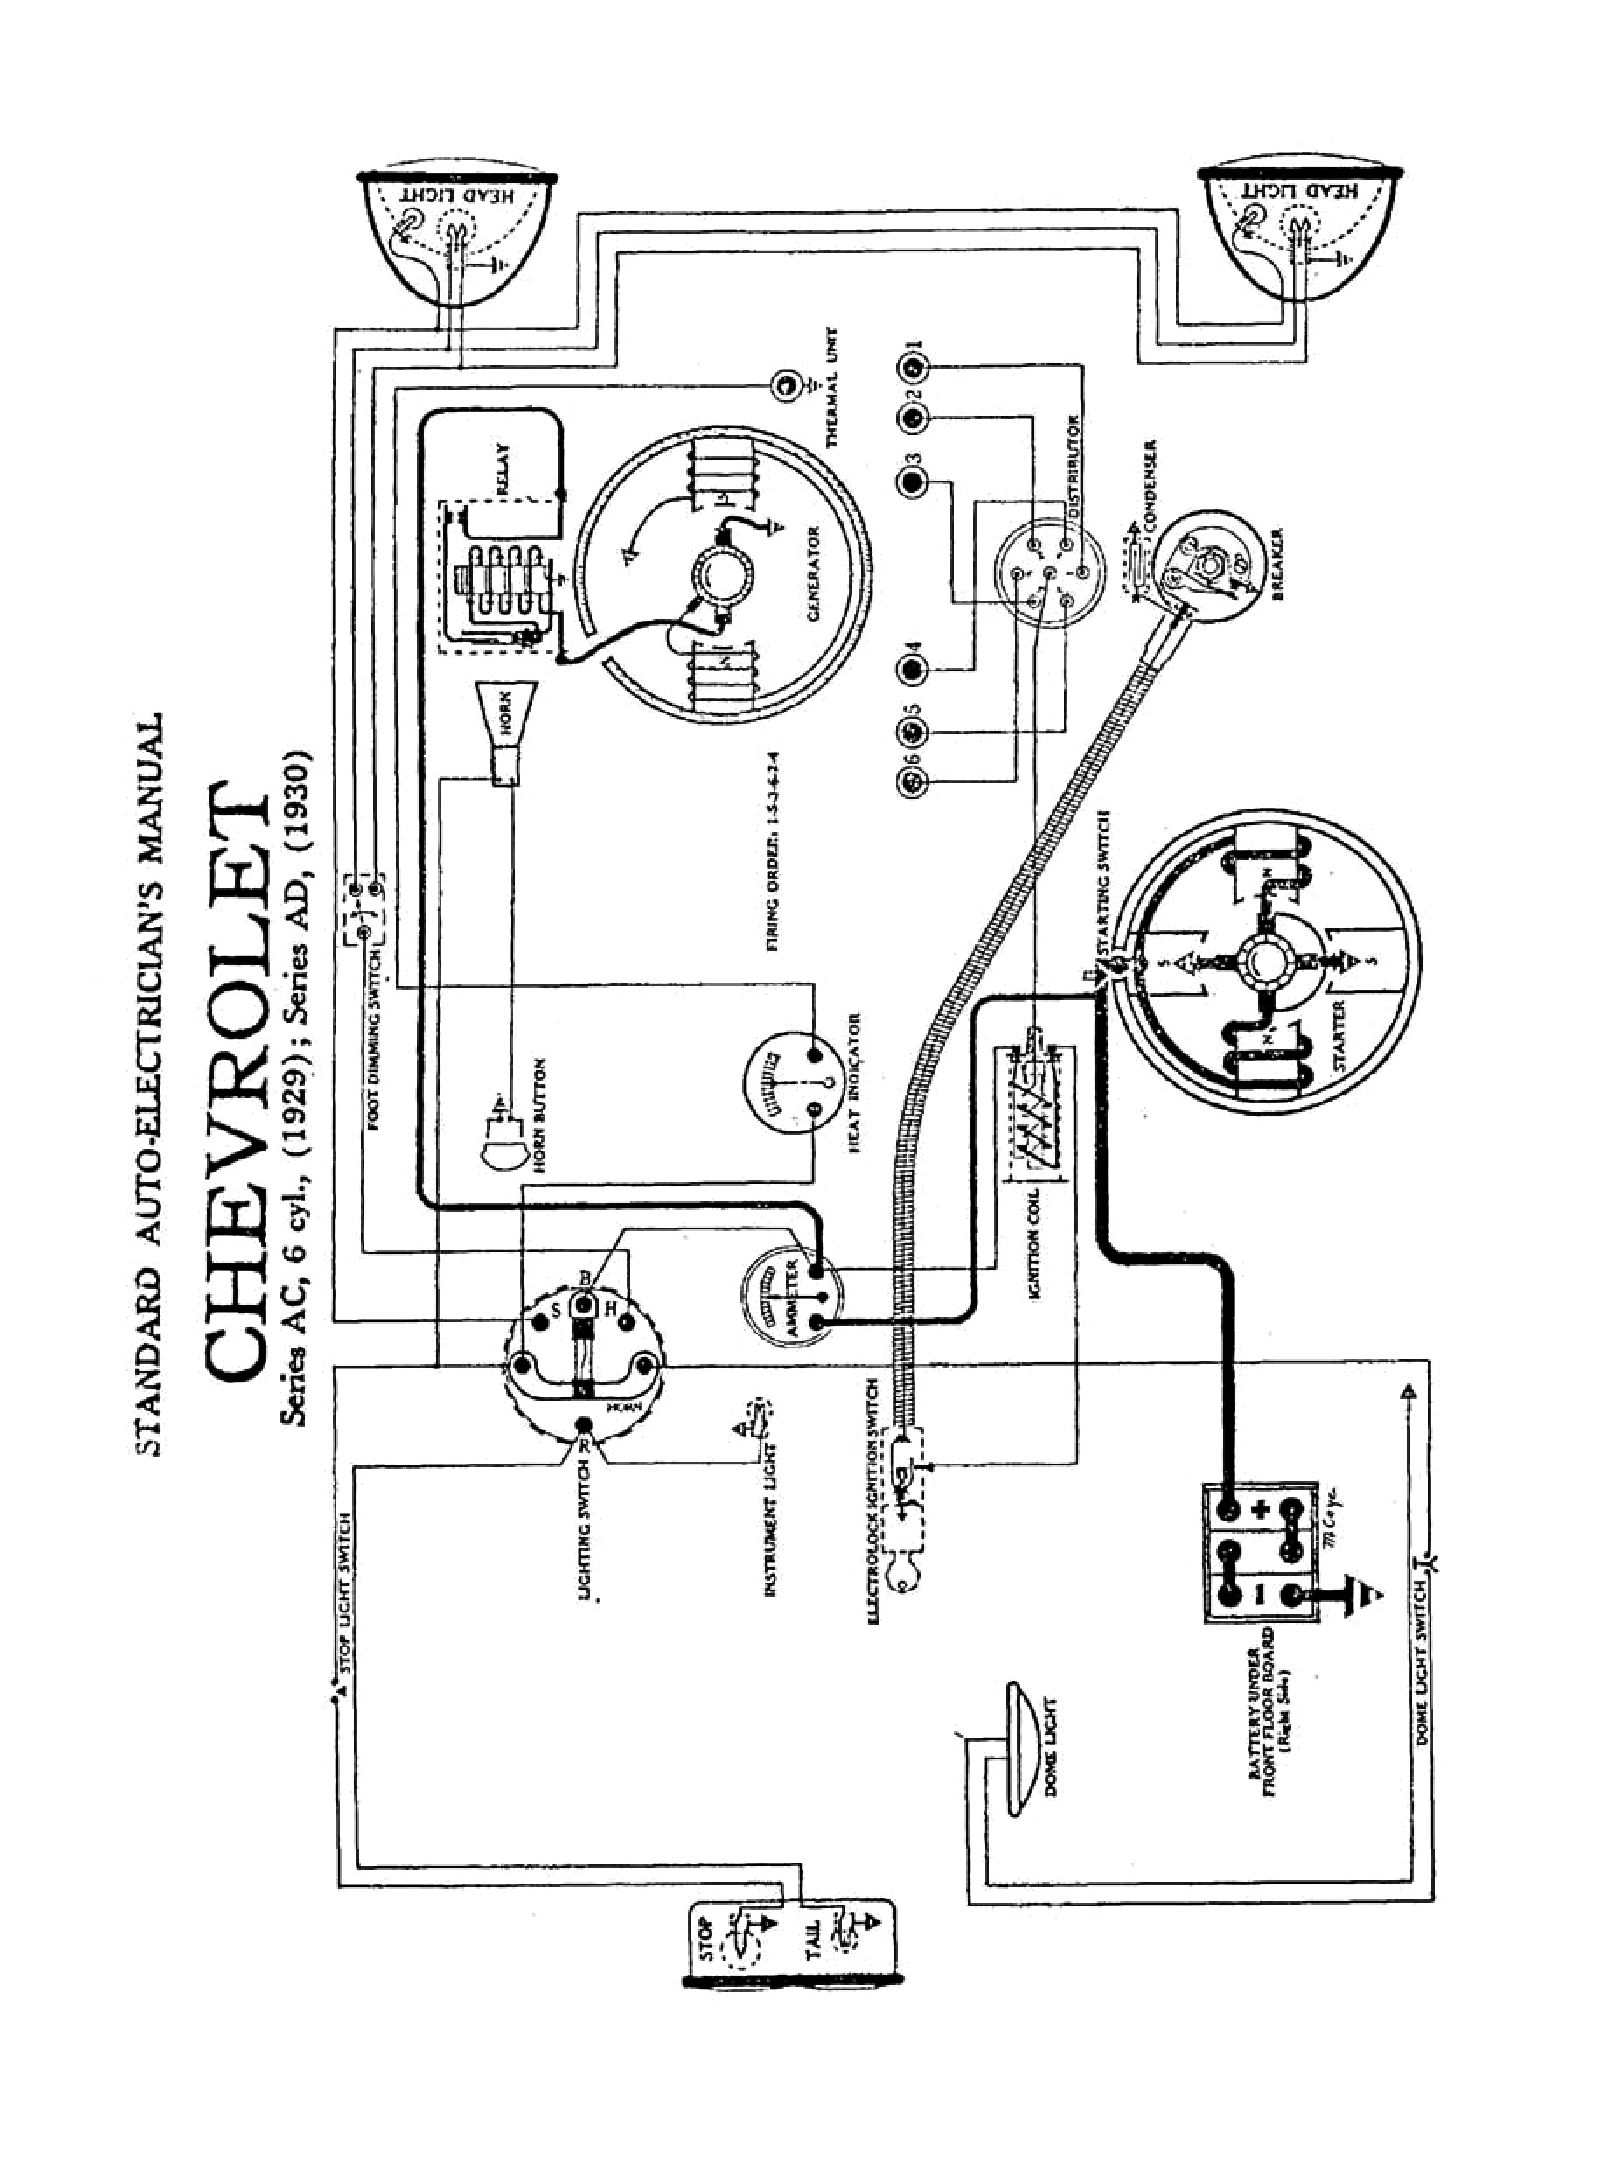 hight resolution of 1946 chevy 235 engine oil filter moreover 1990 chevy g20 van wiring chevy 235 inline 6 235 chevy engine wiring diagram